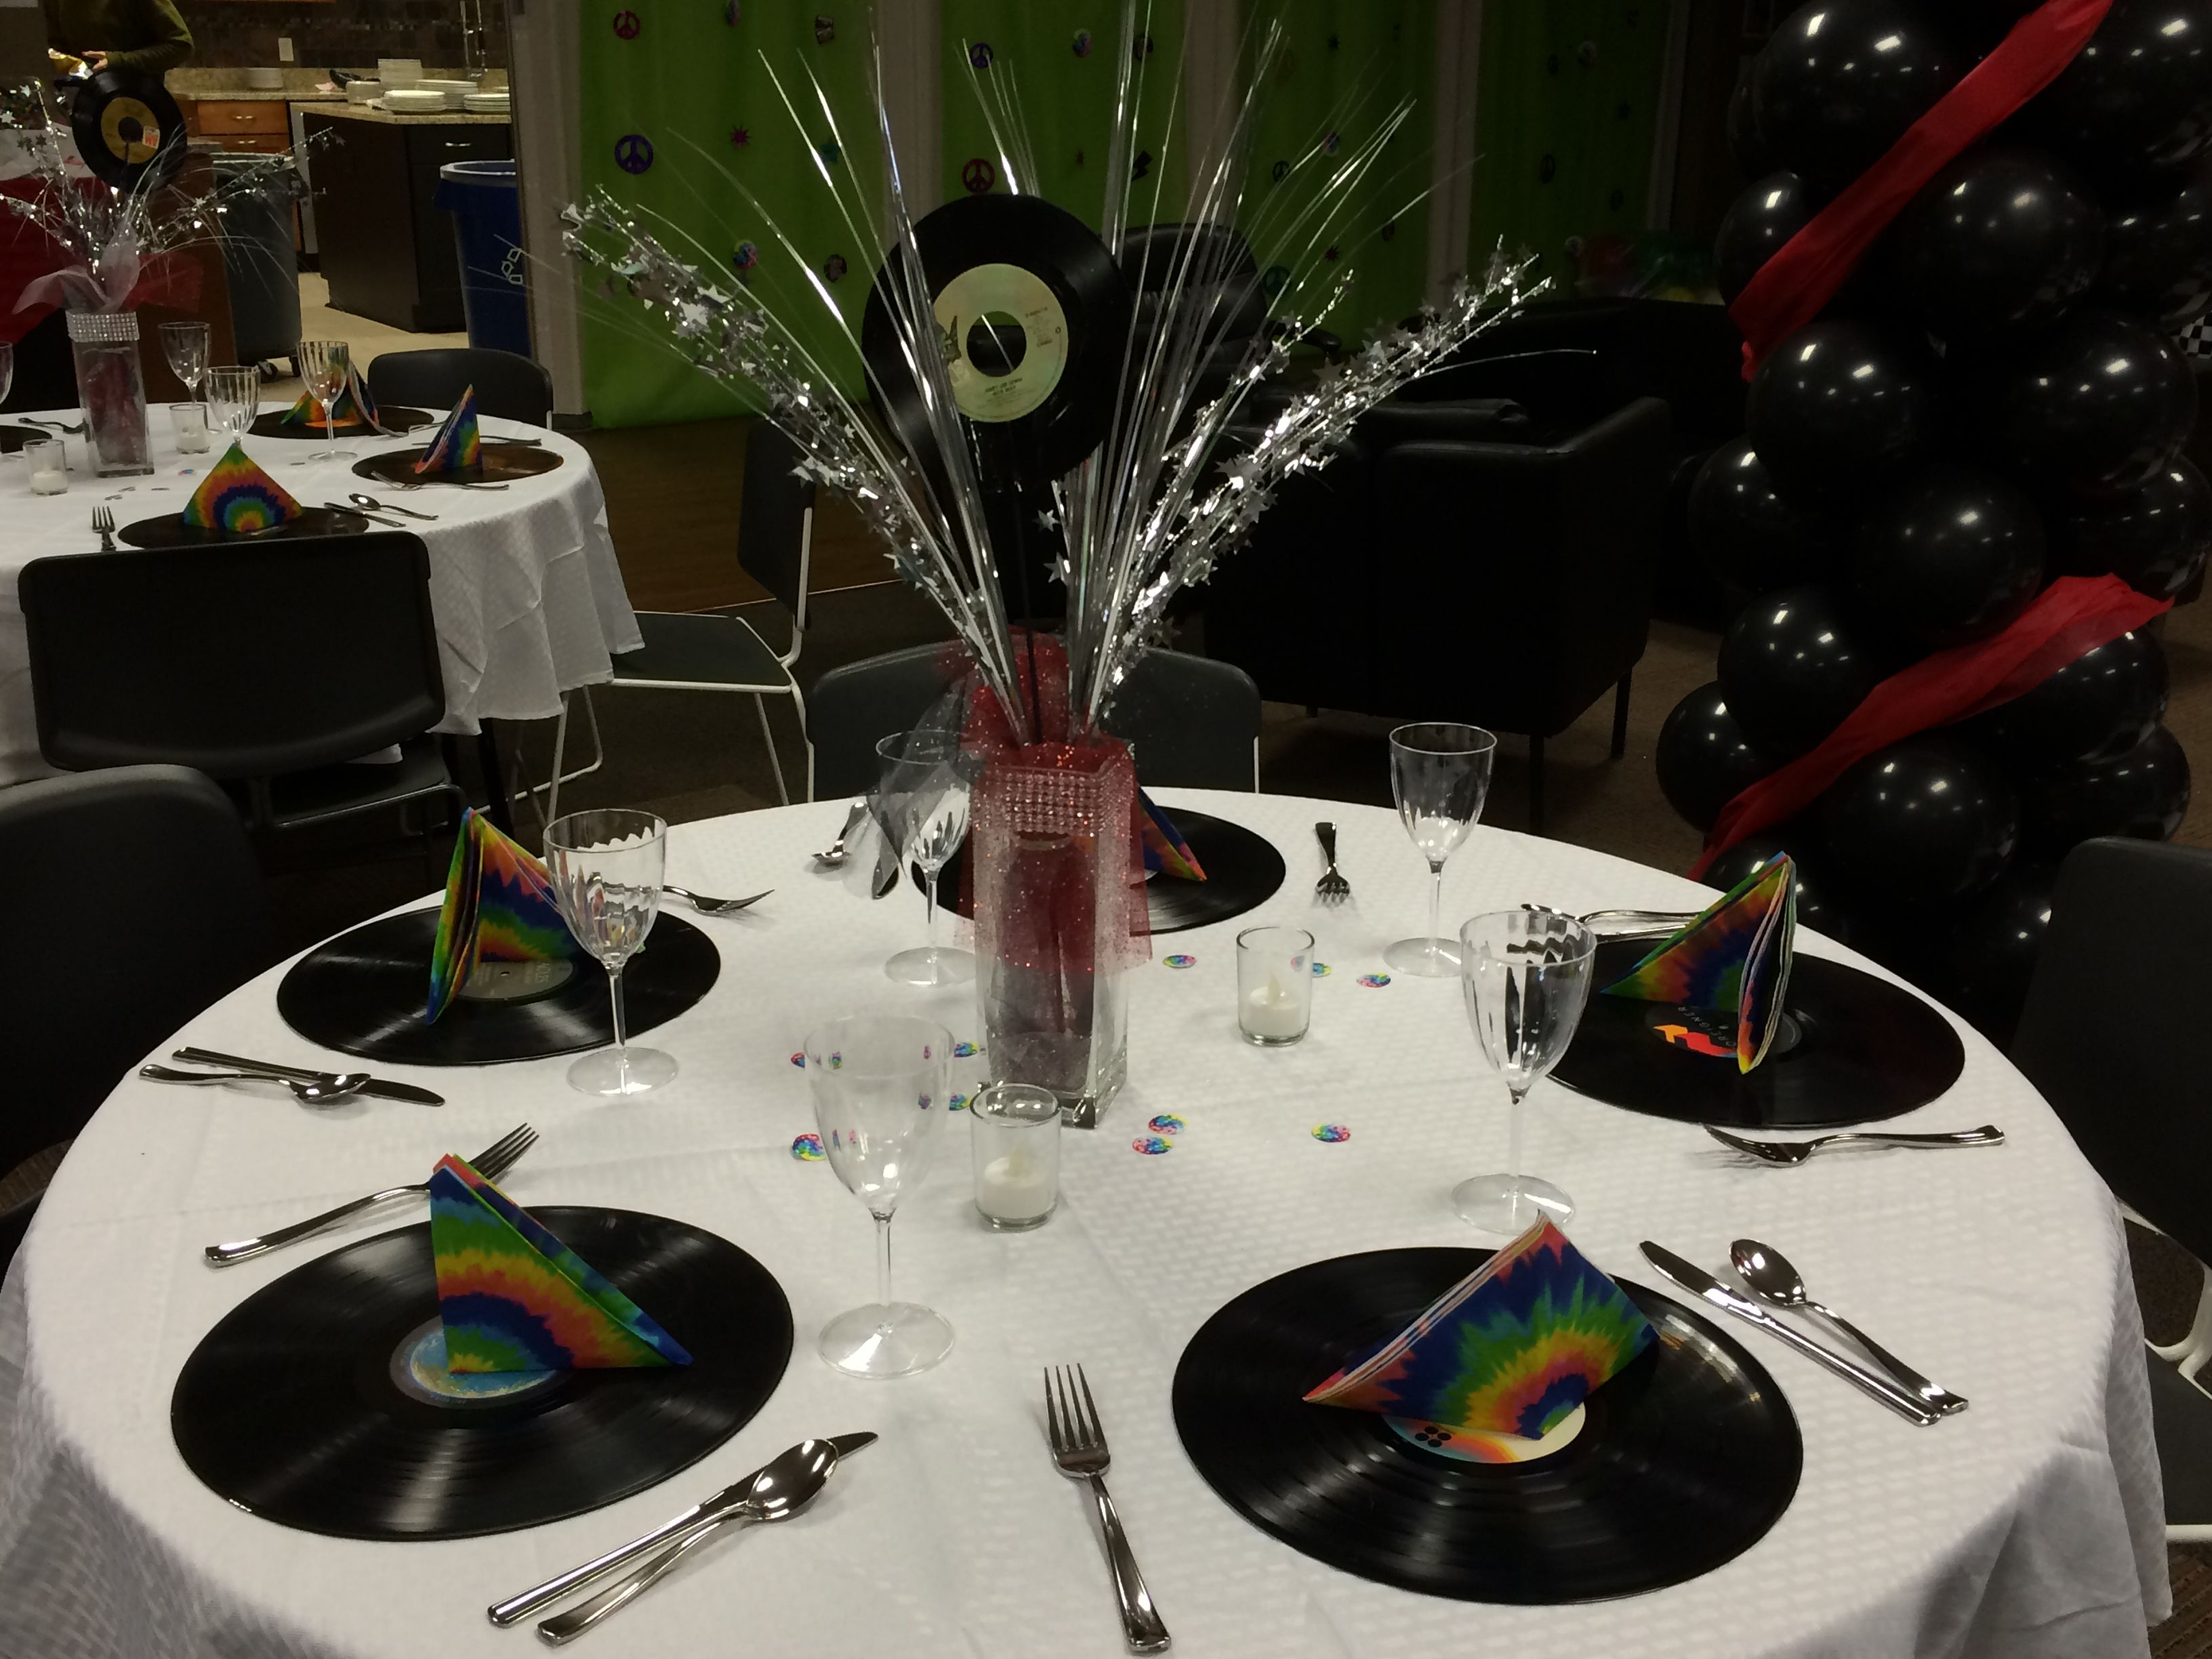 Rock 39 n 39 roll prom table decorations prom ideas pinterest table decorations - Rock and roll theme party decorations ...